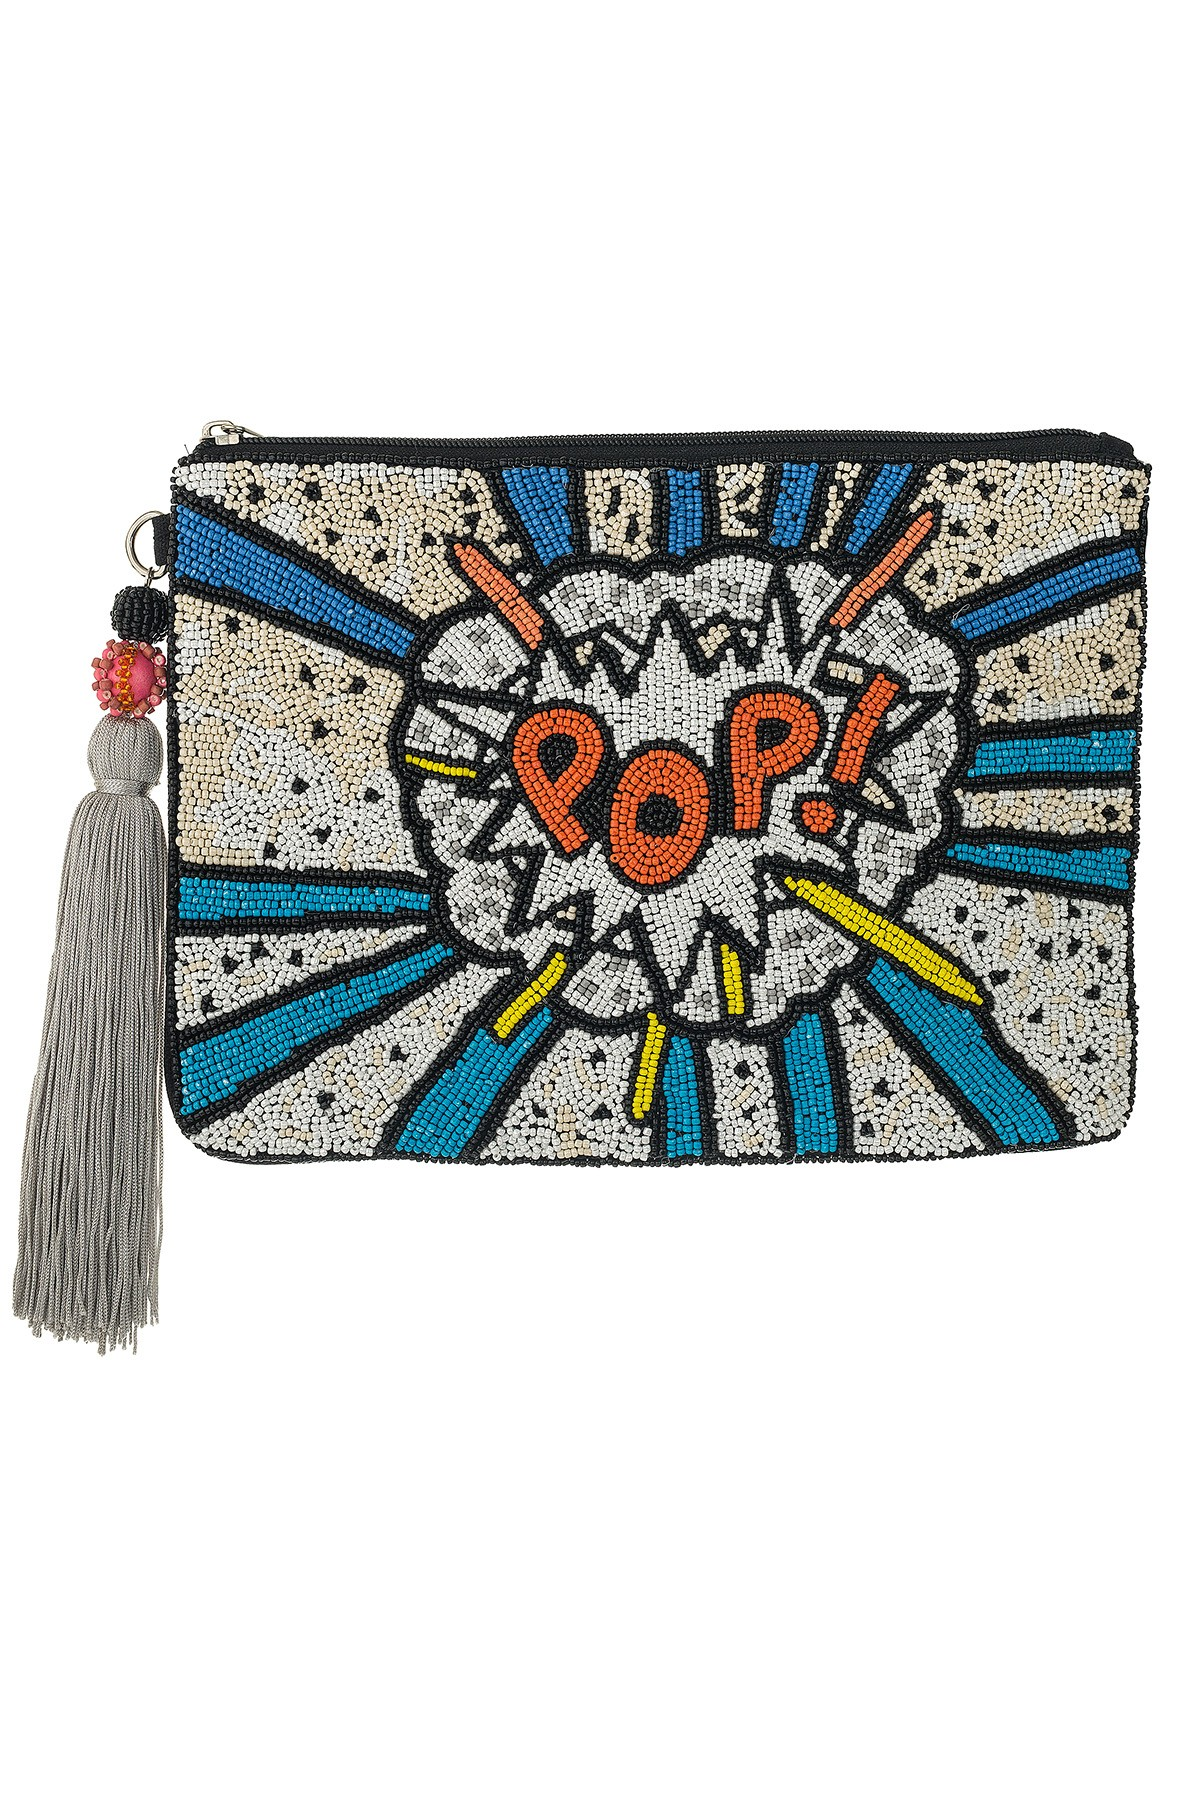 POP! White & Blue Large Clutch